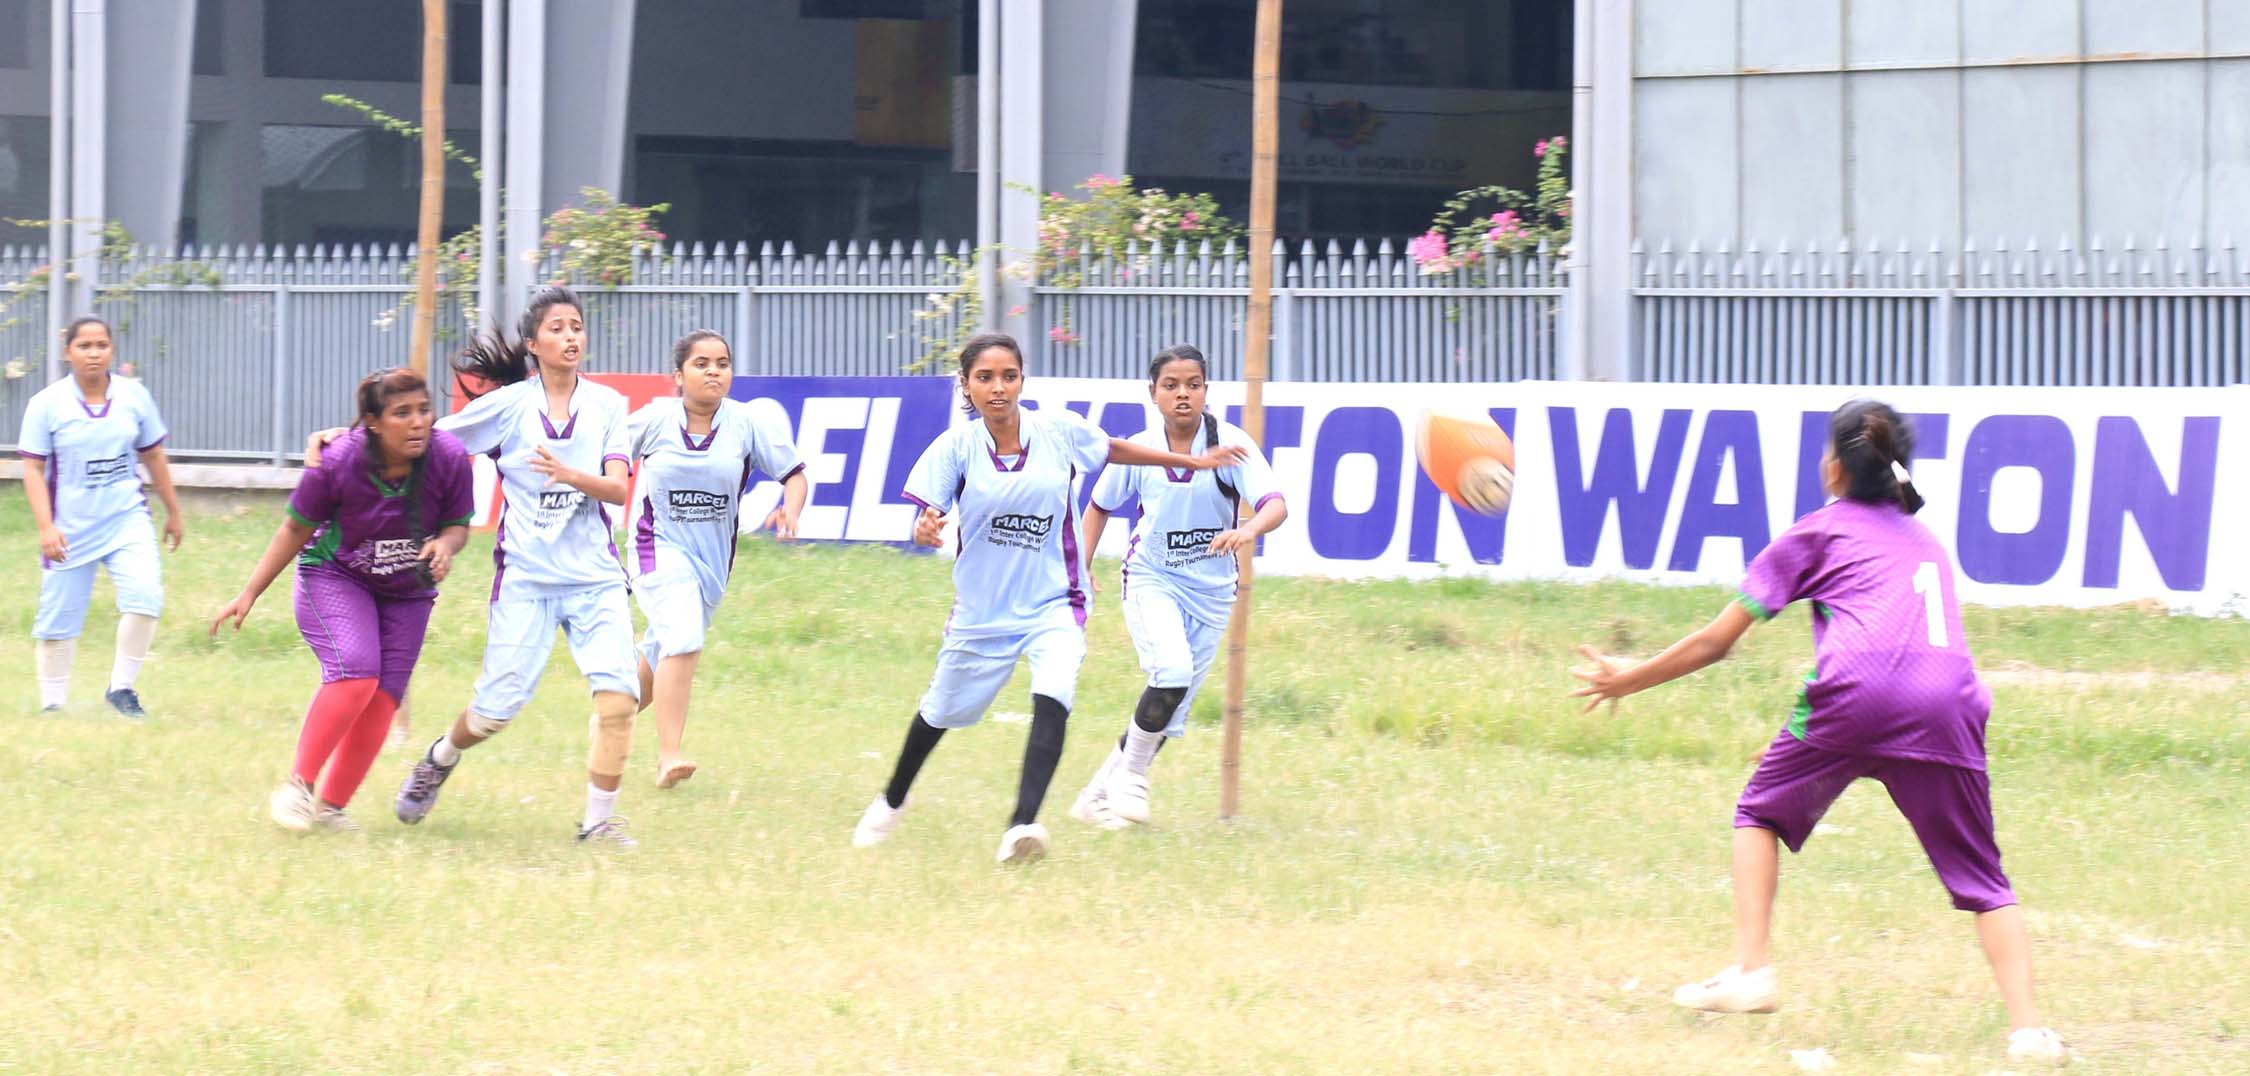 A scene from the match of the Marcel Inter-College Women's Rugby Competition held at the Paltan Maidan on Sunday.